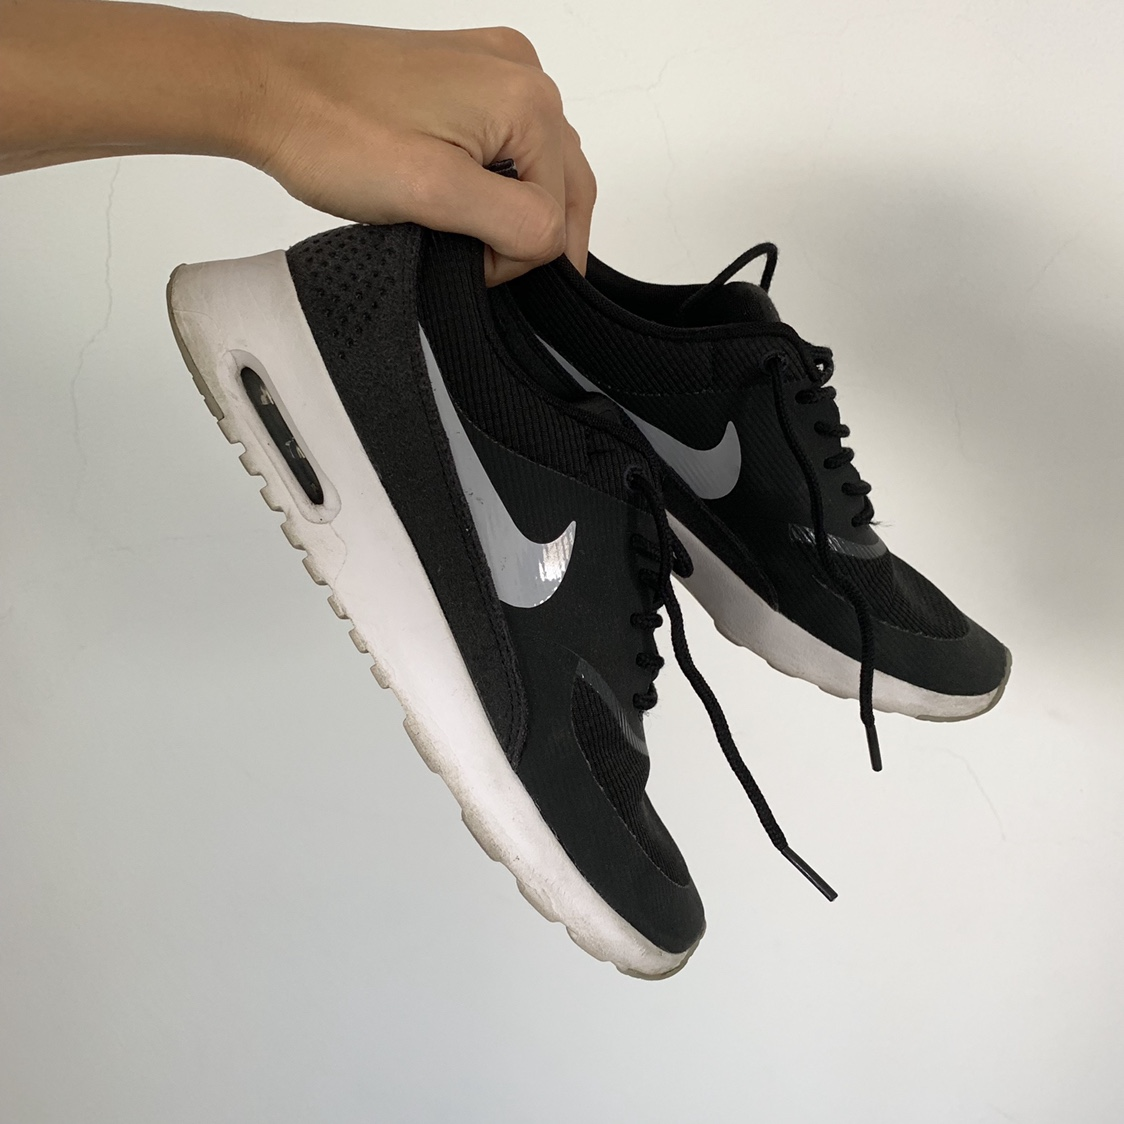 Nike Black Air Max Thea Sneakers Trainers Size Depop